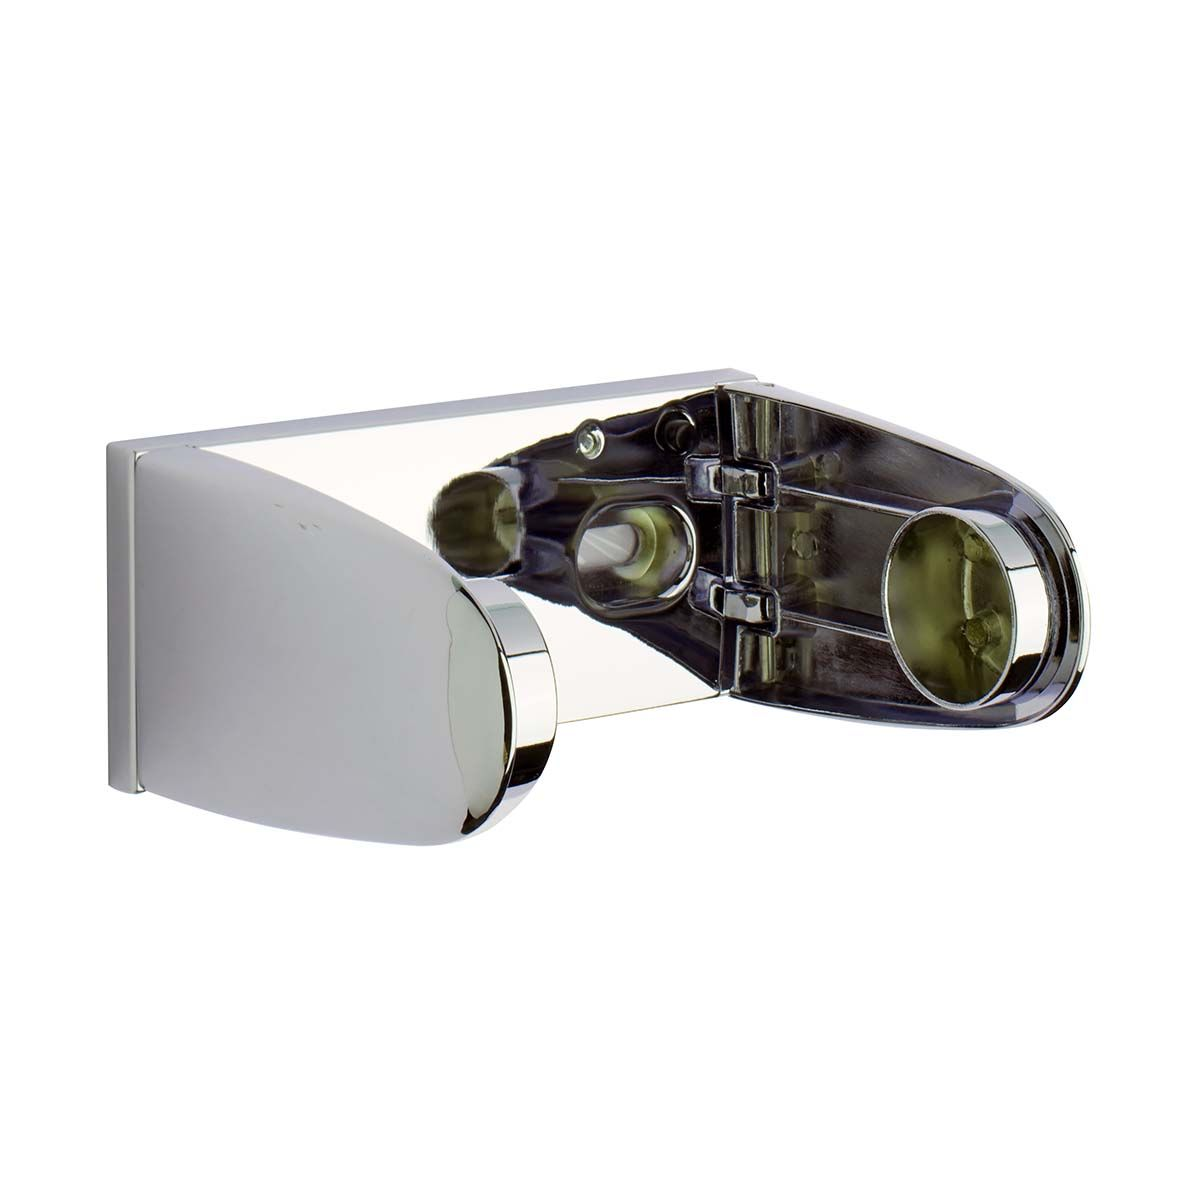 Surface Mount Deluxe Single Paper Roll Holder - Polished Chrome Plated Zamac